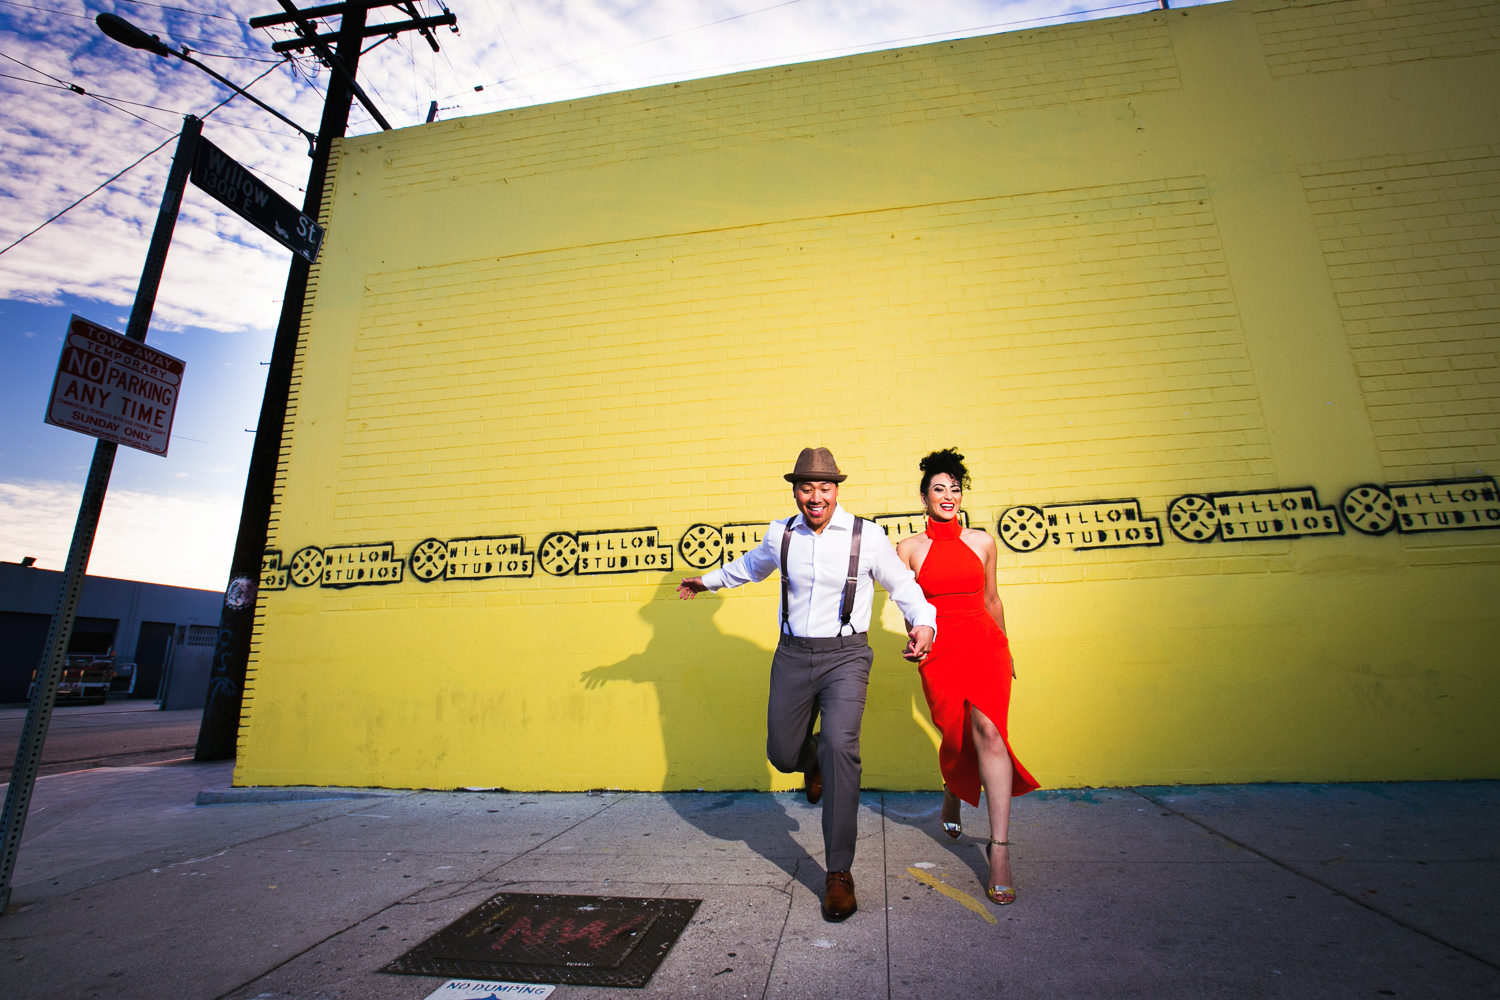 Fashionable Engagement in Downtown Los Angeles - Hand in Hand and Dancing